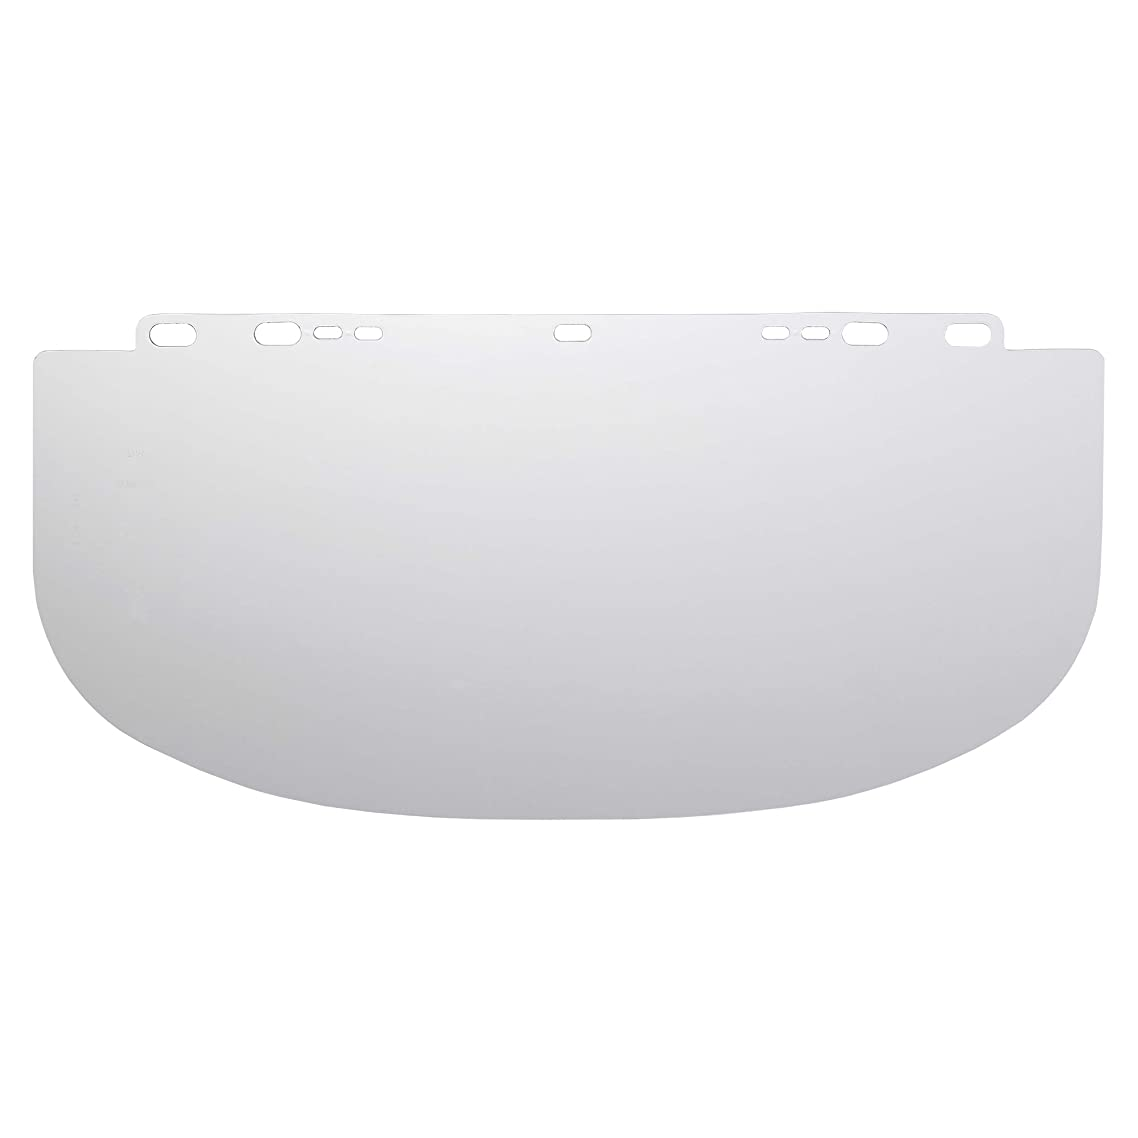 """Jackson Safety F20 High Impact Face Shield (29103), Polycarbonate, 9"""" x 19.25"""" x 0.06"""", Clear, Face Protection, Unbound, 36 Shields / Case"""